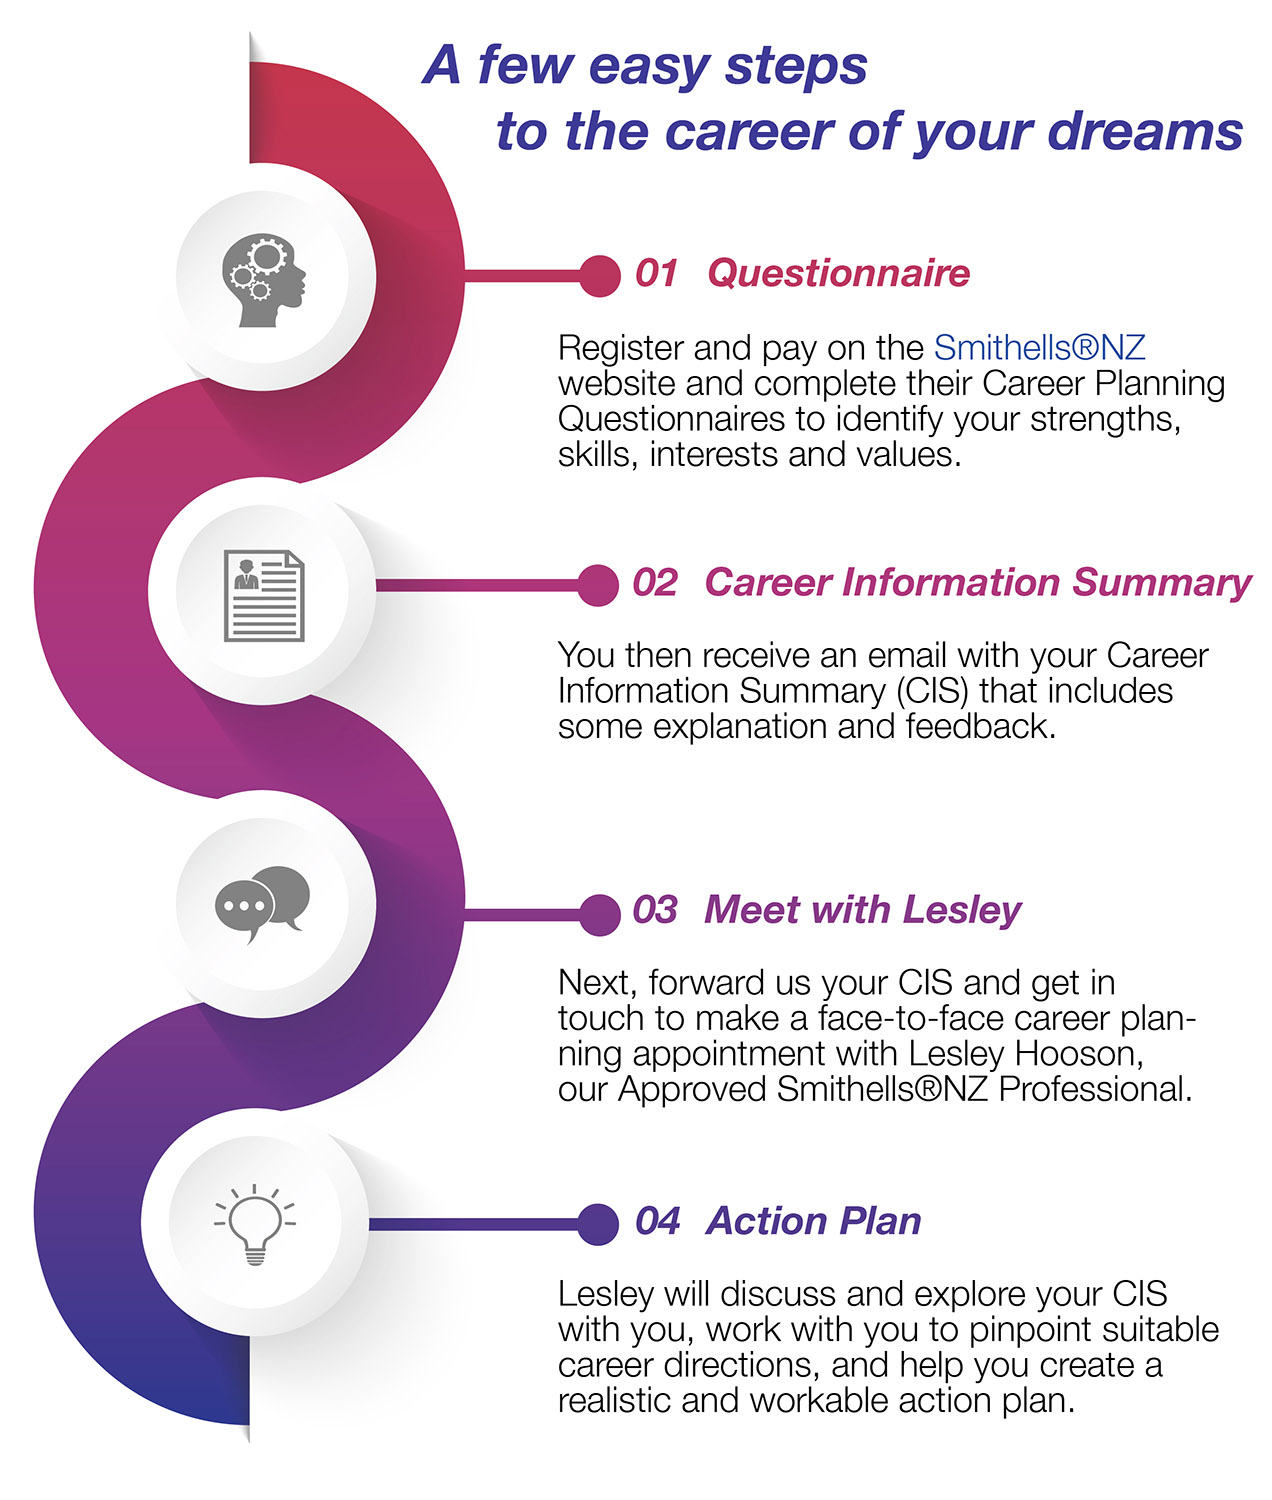 Four clear steps that show the process to complete Smithells questionnaires' and career path development with Lesley